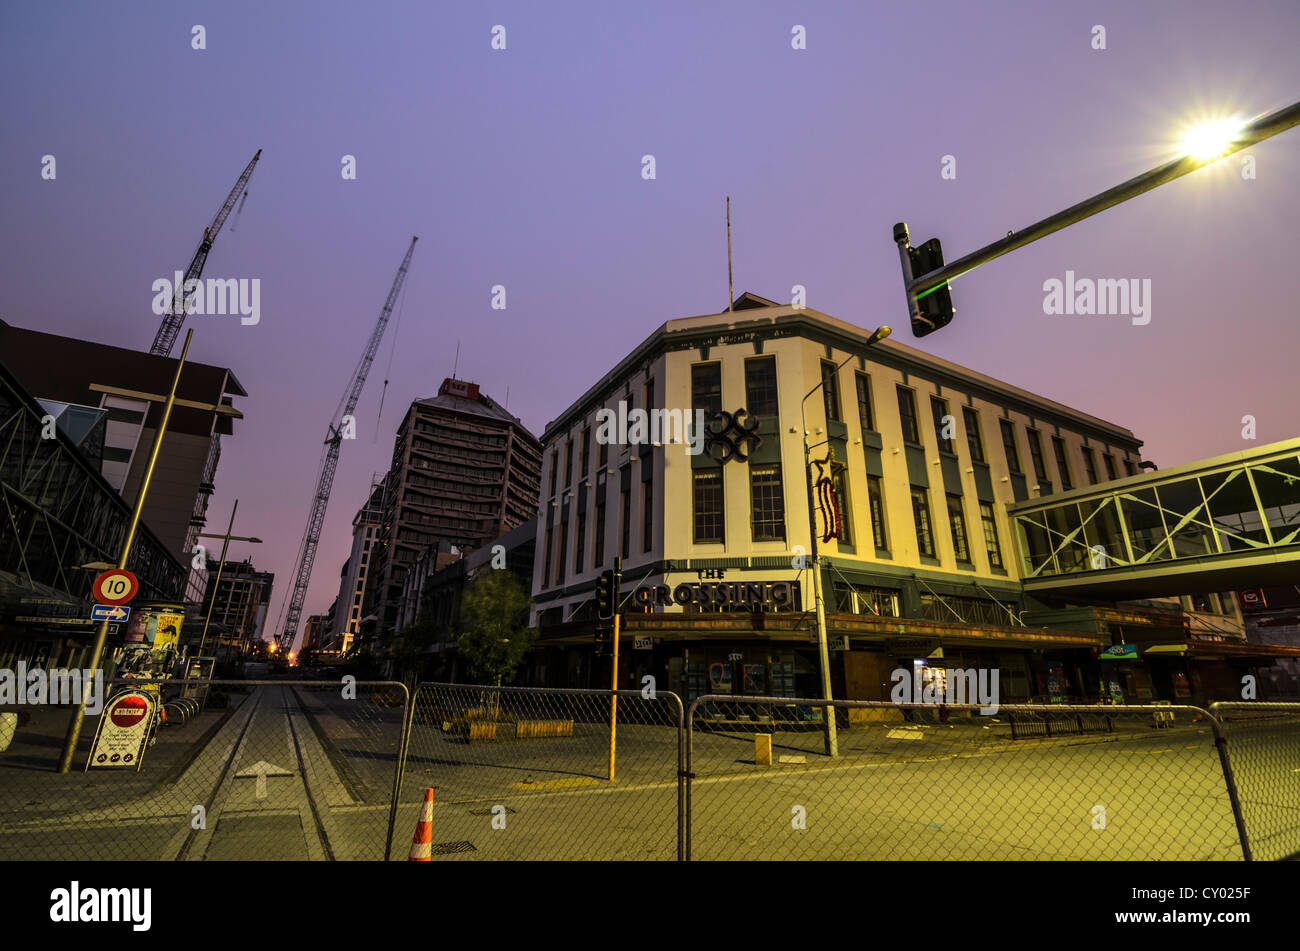 City cente of Christchurch, damaged by earthquakes, demolition works in the CBD Red Zone, South Island, New Zealand - Stock Image